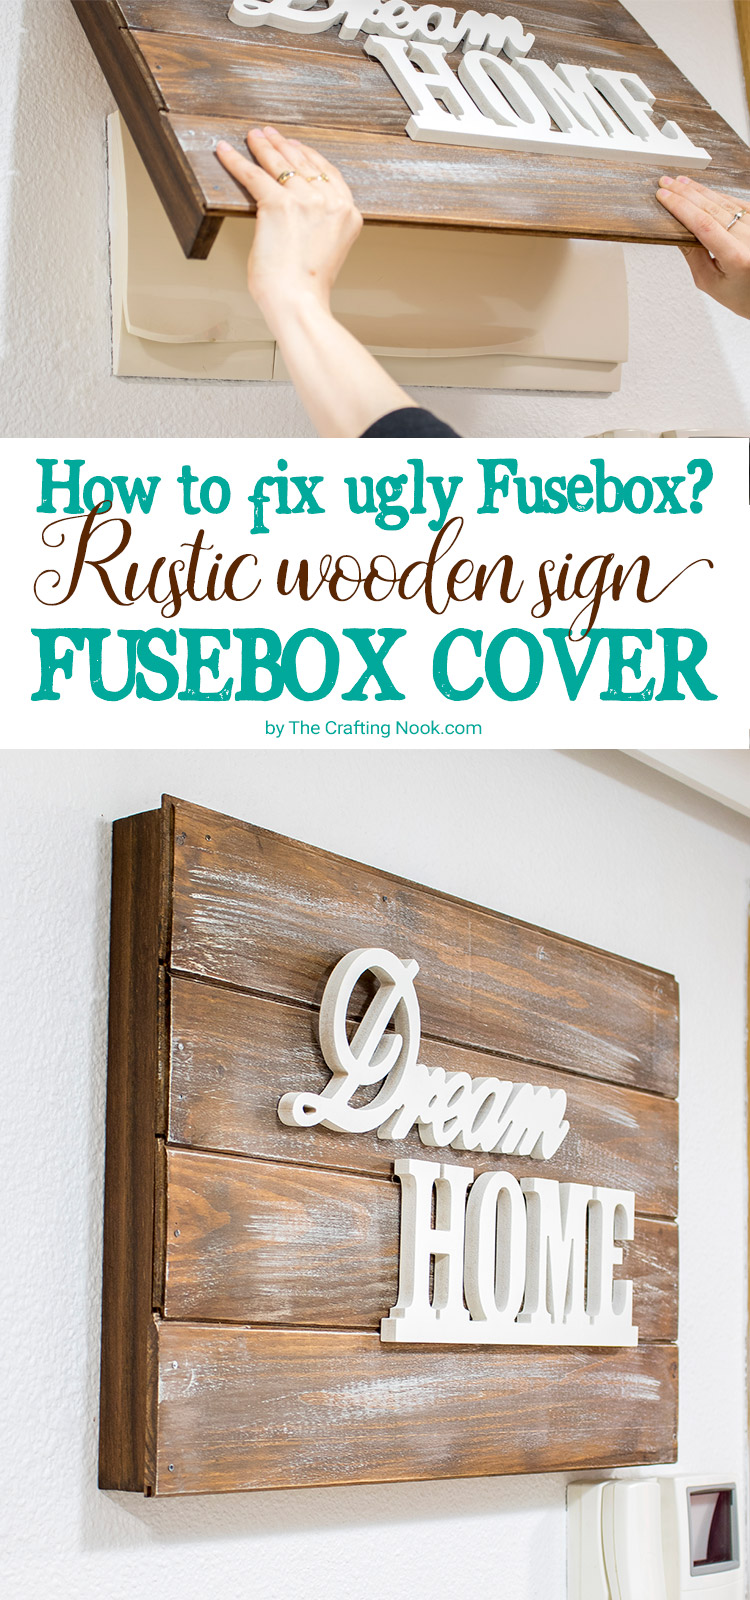 Rustic Wooden Sign Fusebox Cover